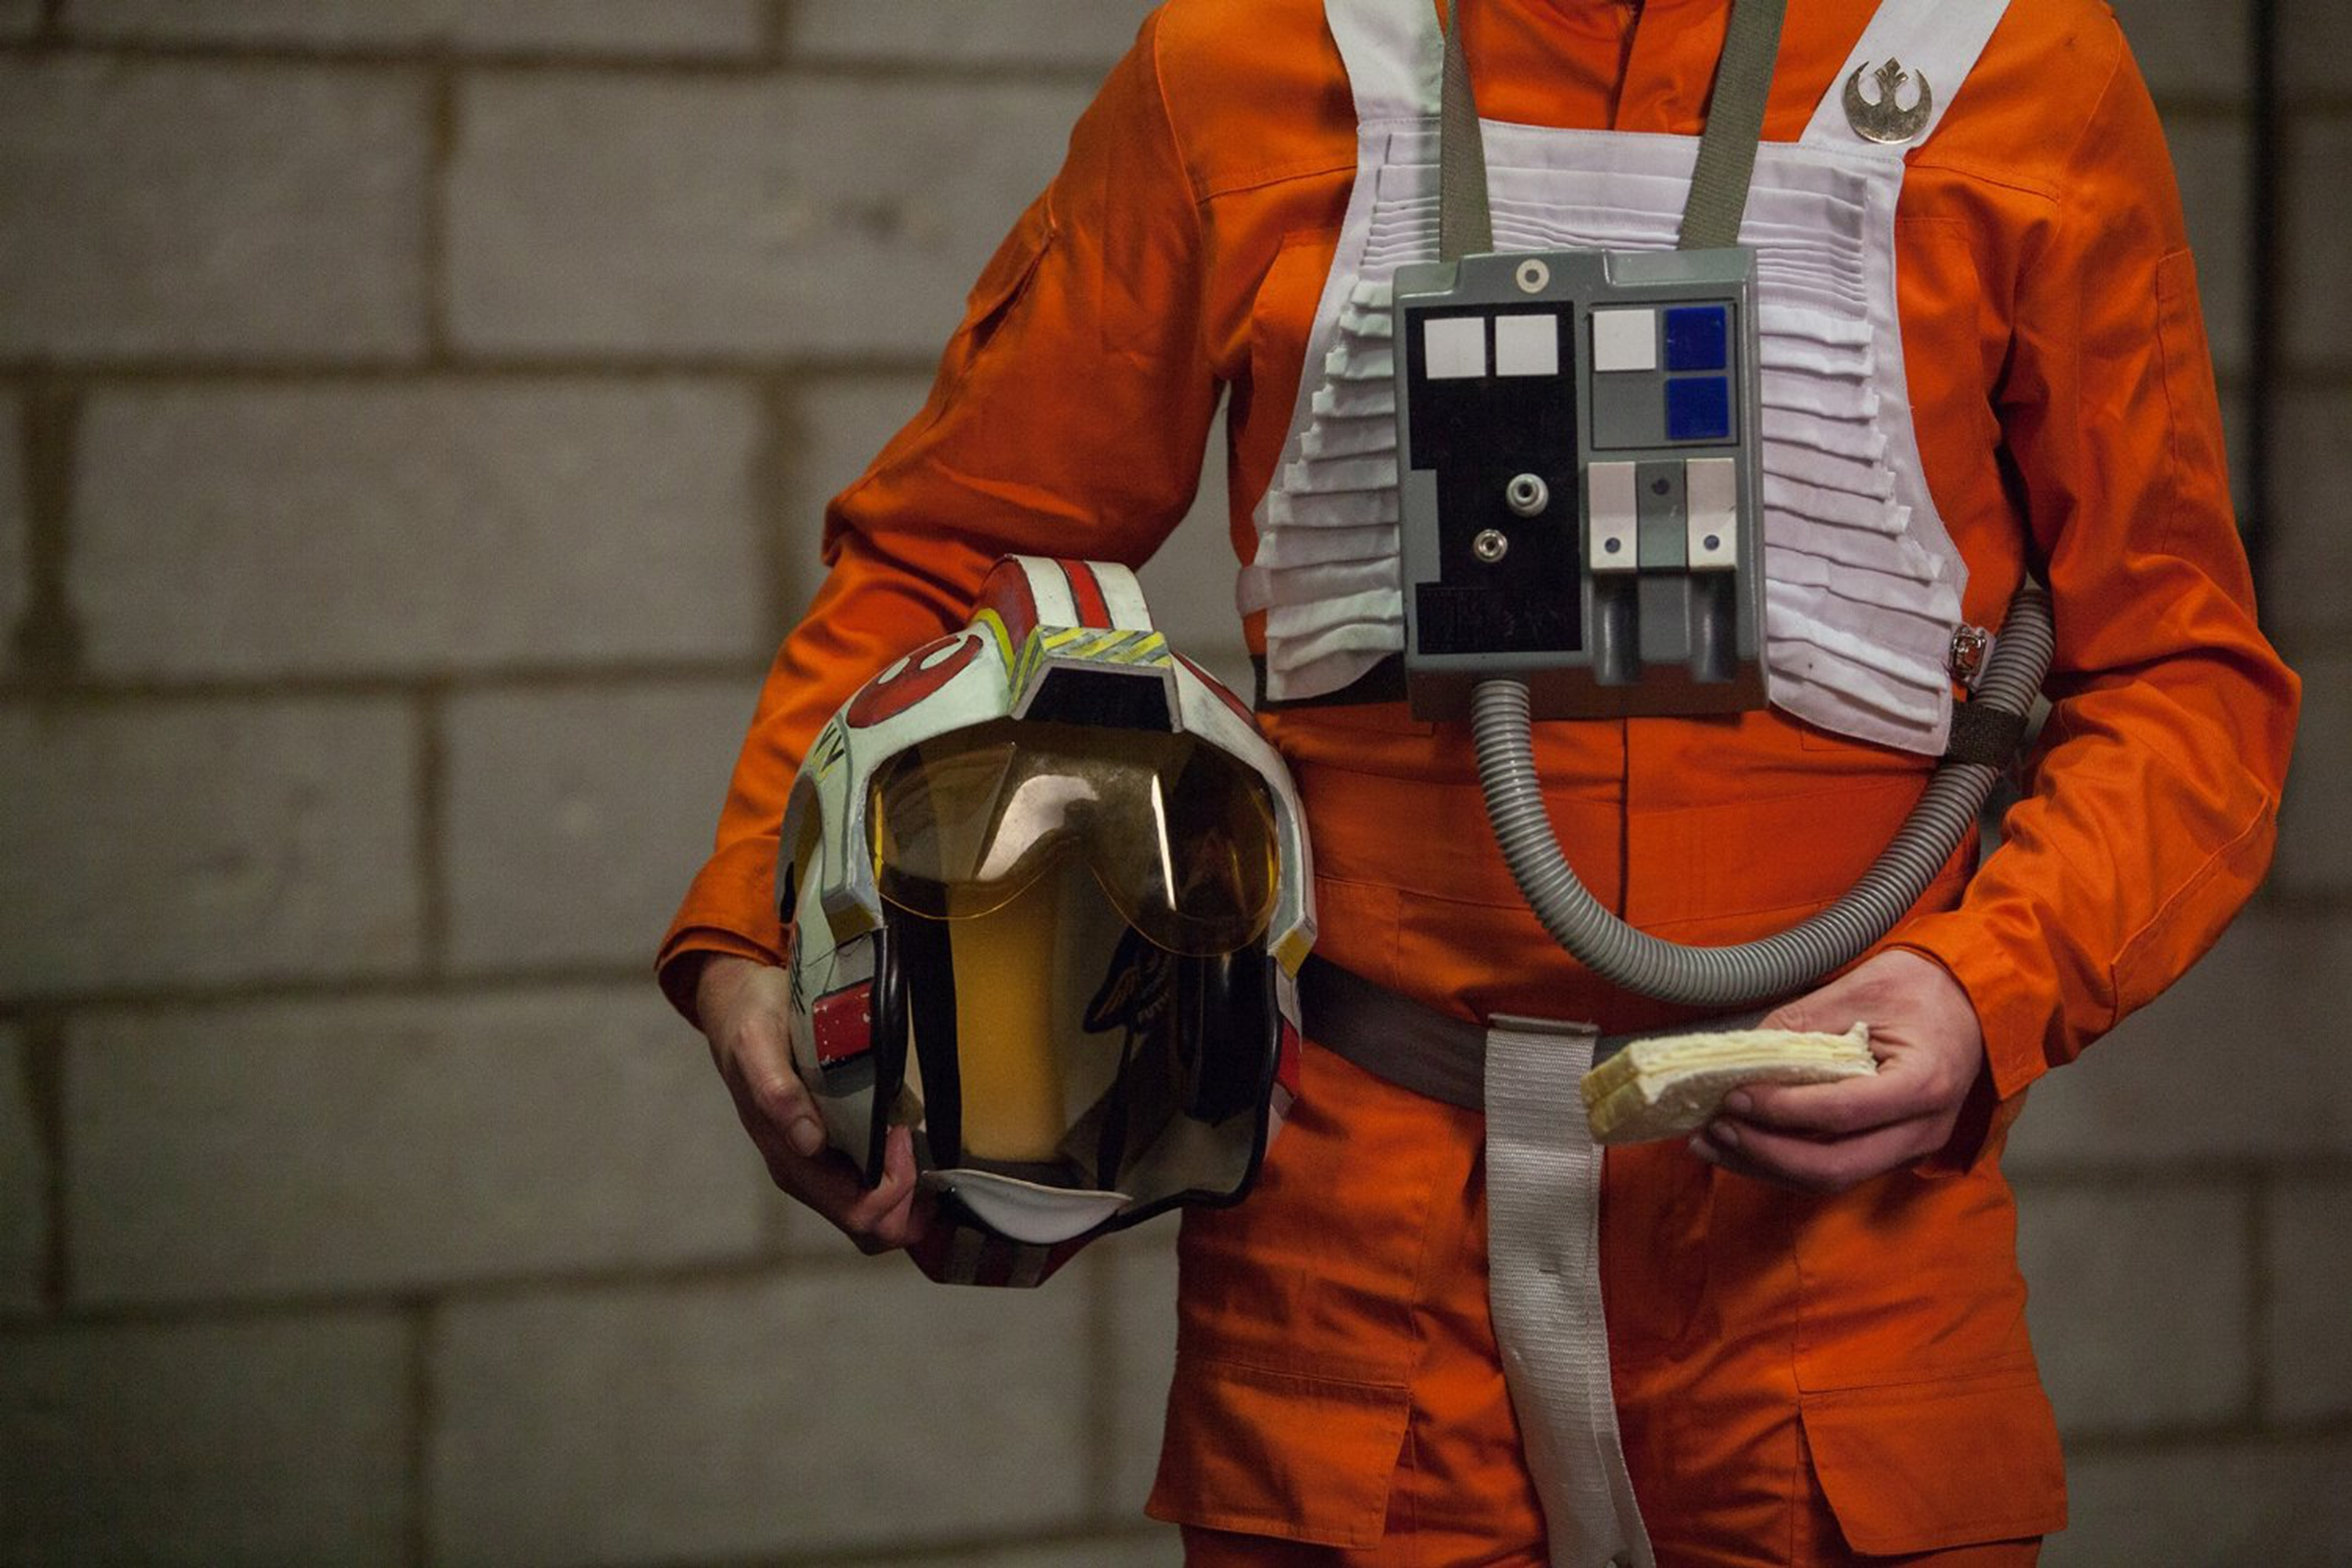 """Elstree 1976"" goes behind the scenes of the original ""Star Wars"" film."